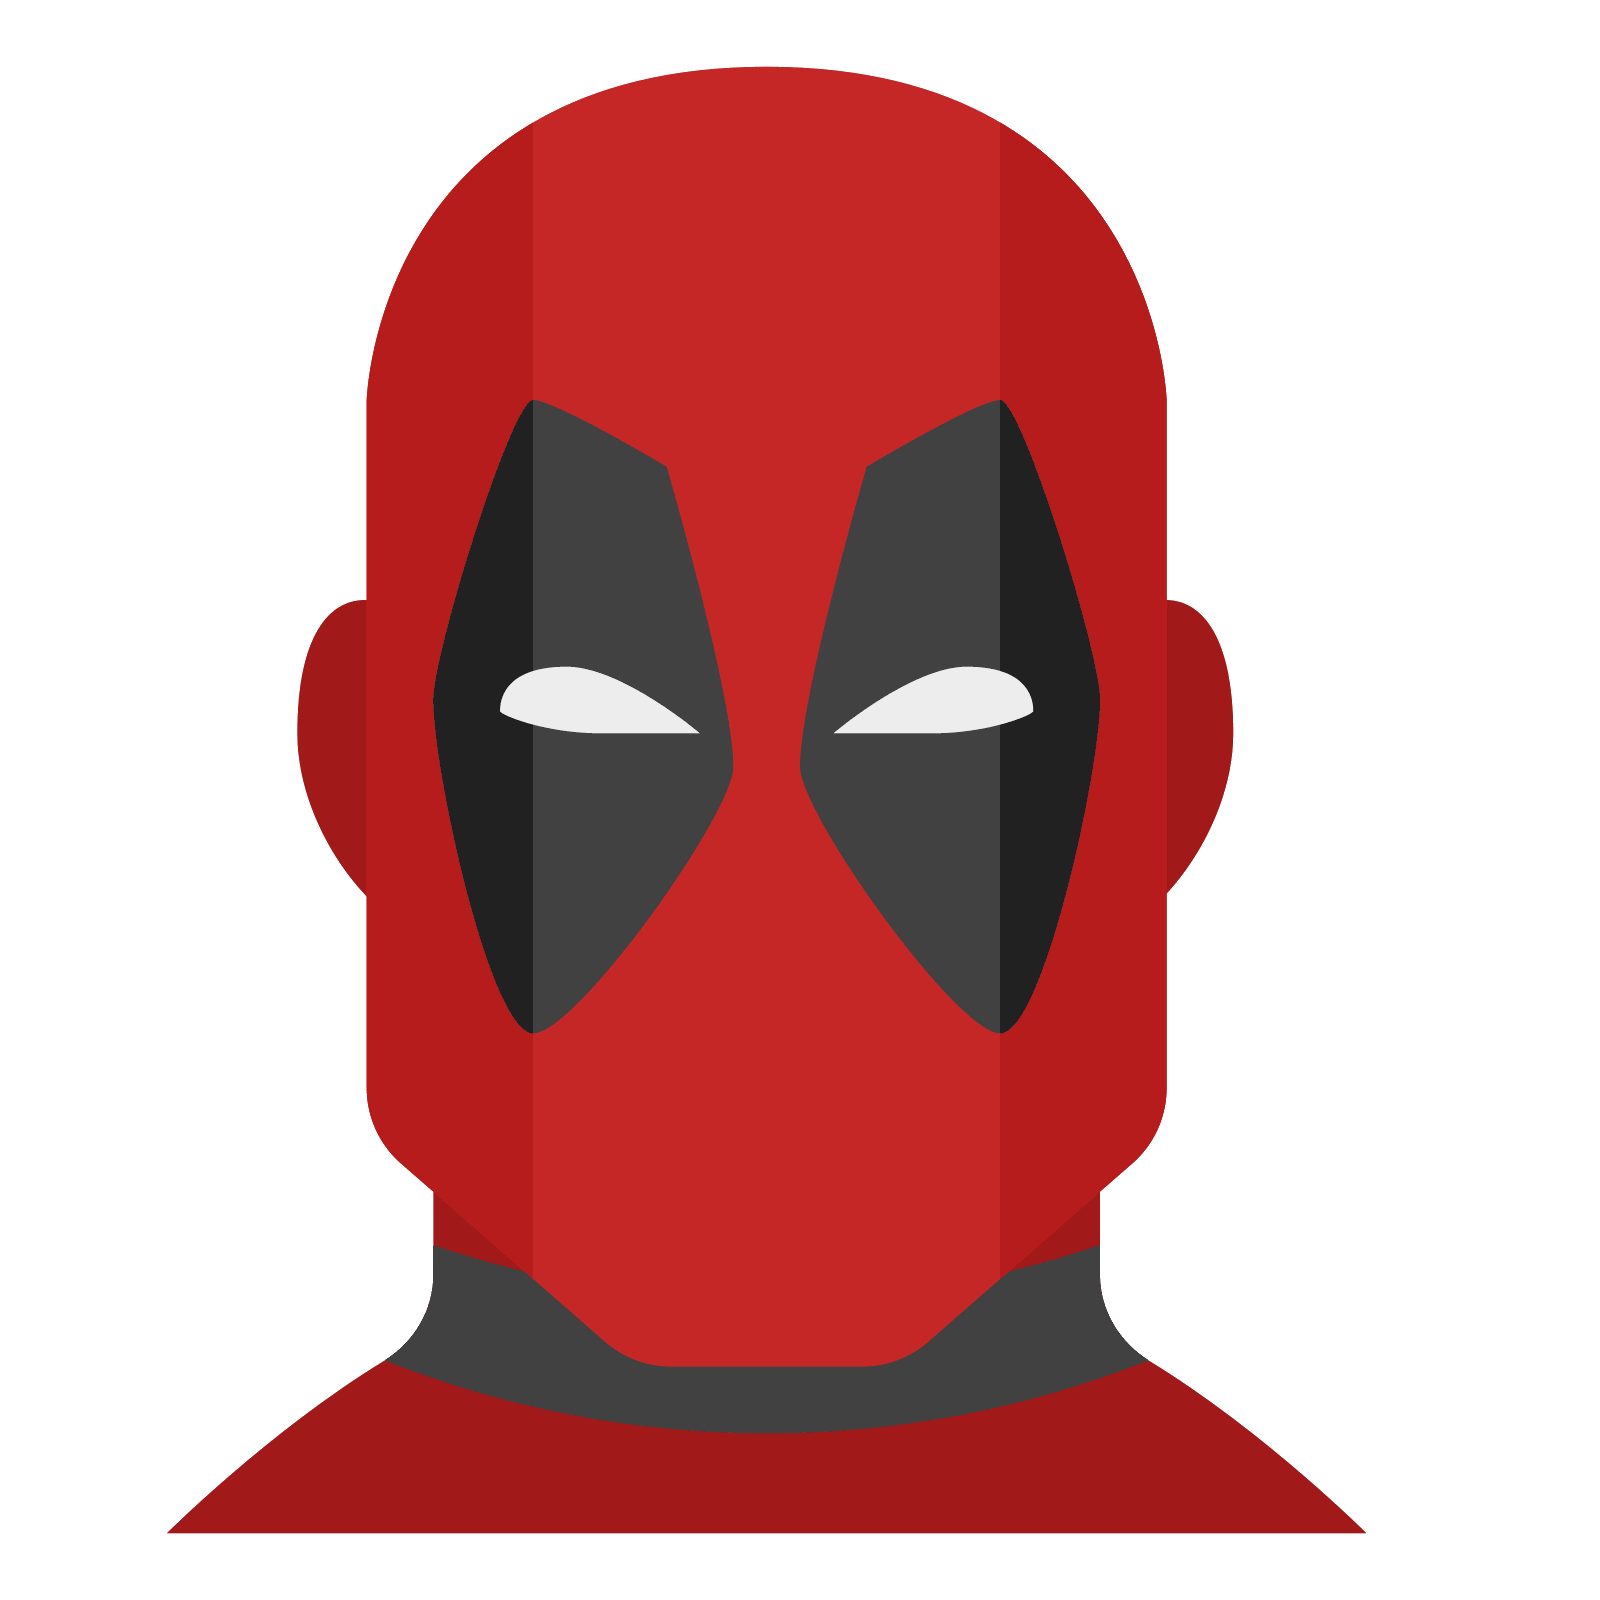 Sign svg deadpool. Collection of free download